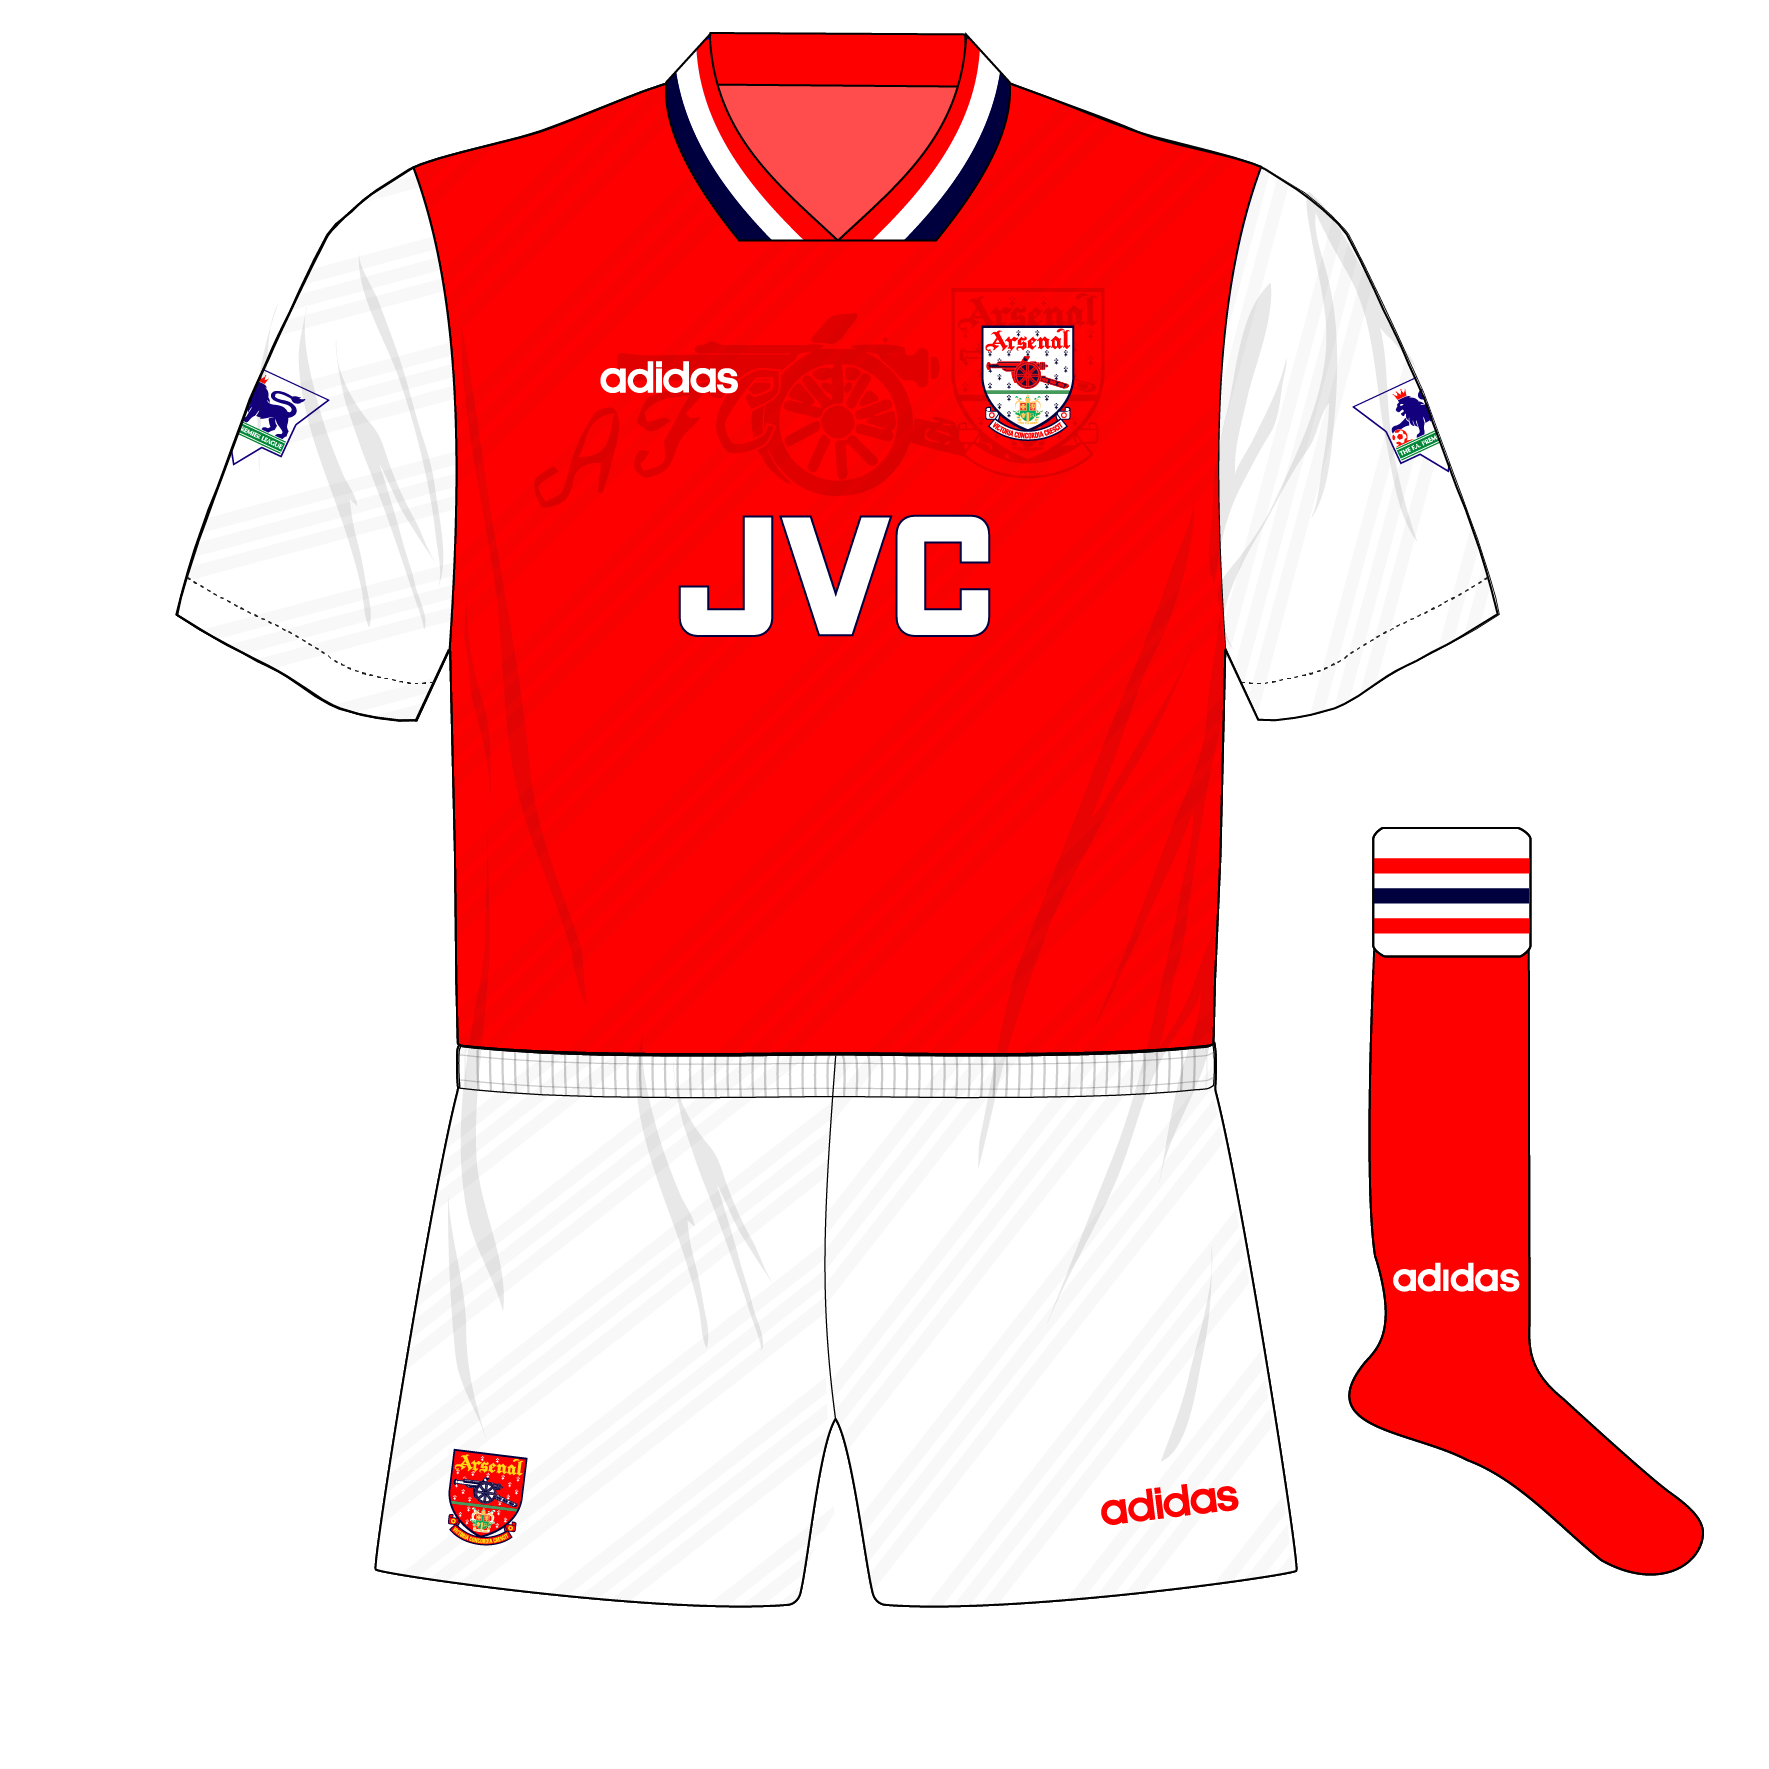 bcbf5e7da1d Fantasy Kit Friday, 15-9-17 – Arsenal in adidas, 1994 – Museum of Jerseys